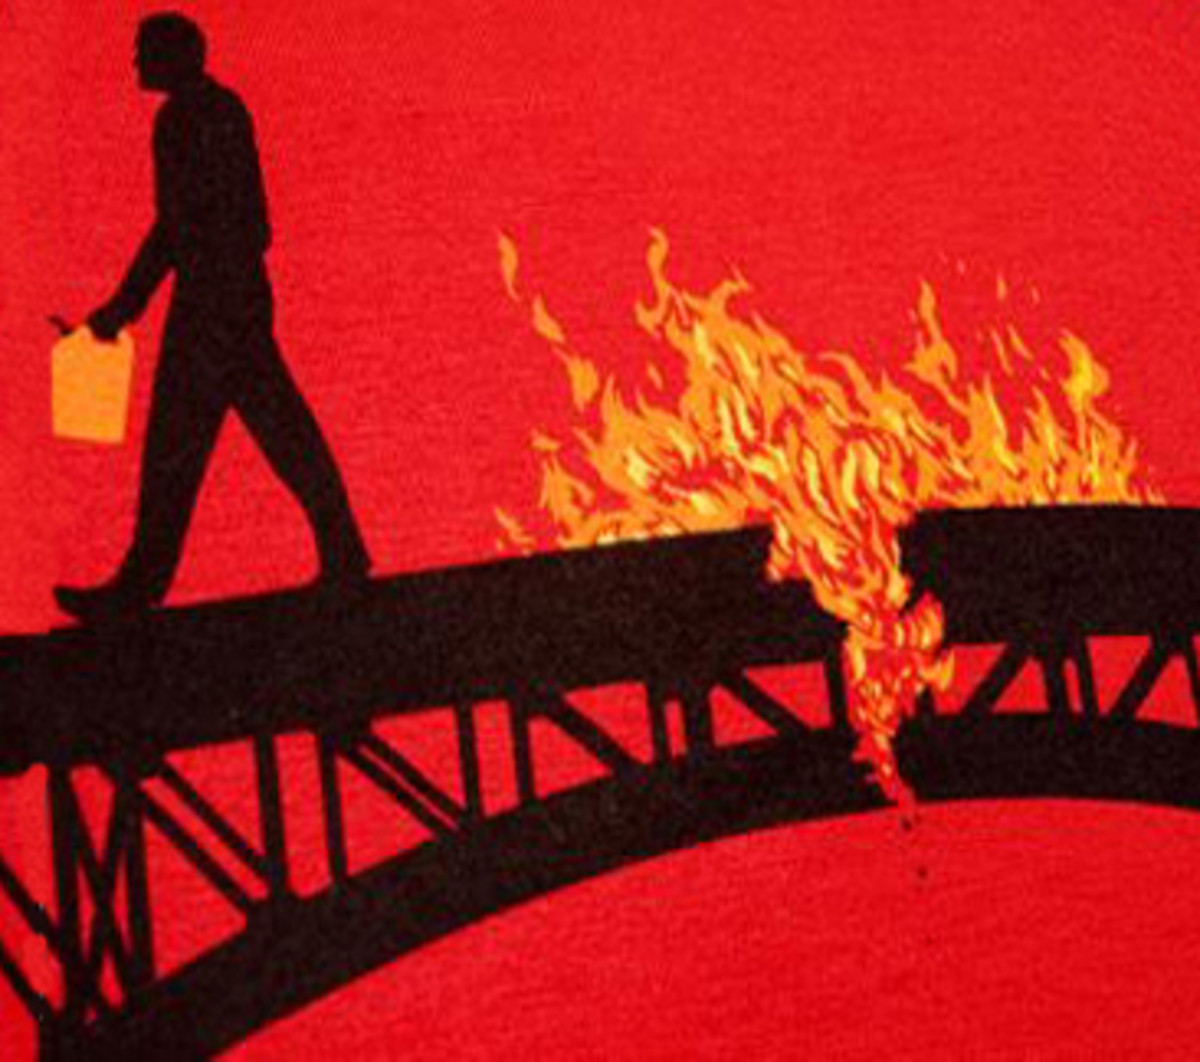 Unsurprisingly, using a director's power to burn the bridge behind you was found to be an improper use.